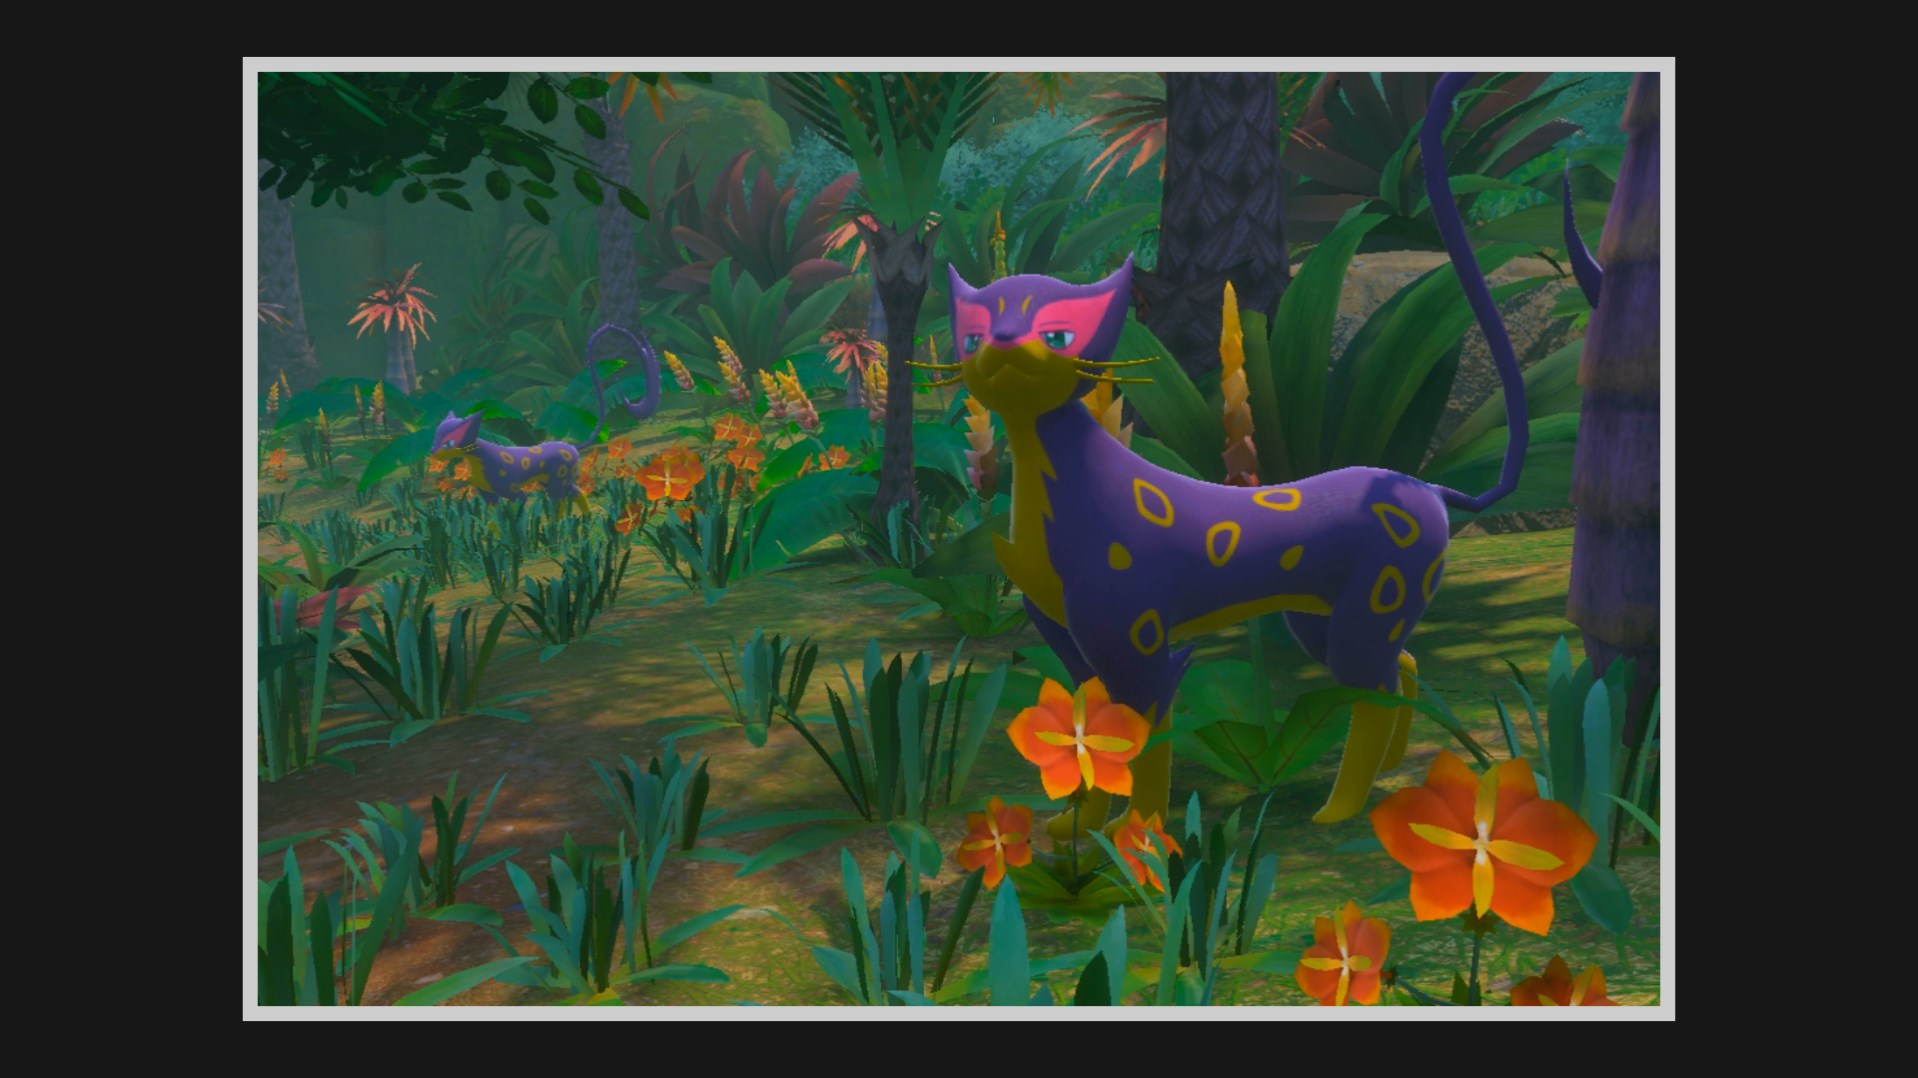 A Liepard looks up while standing in a lush green flower bed